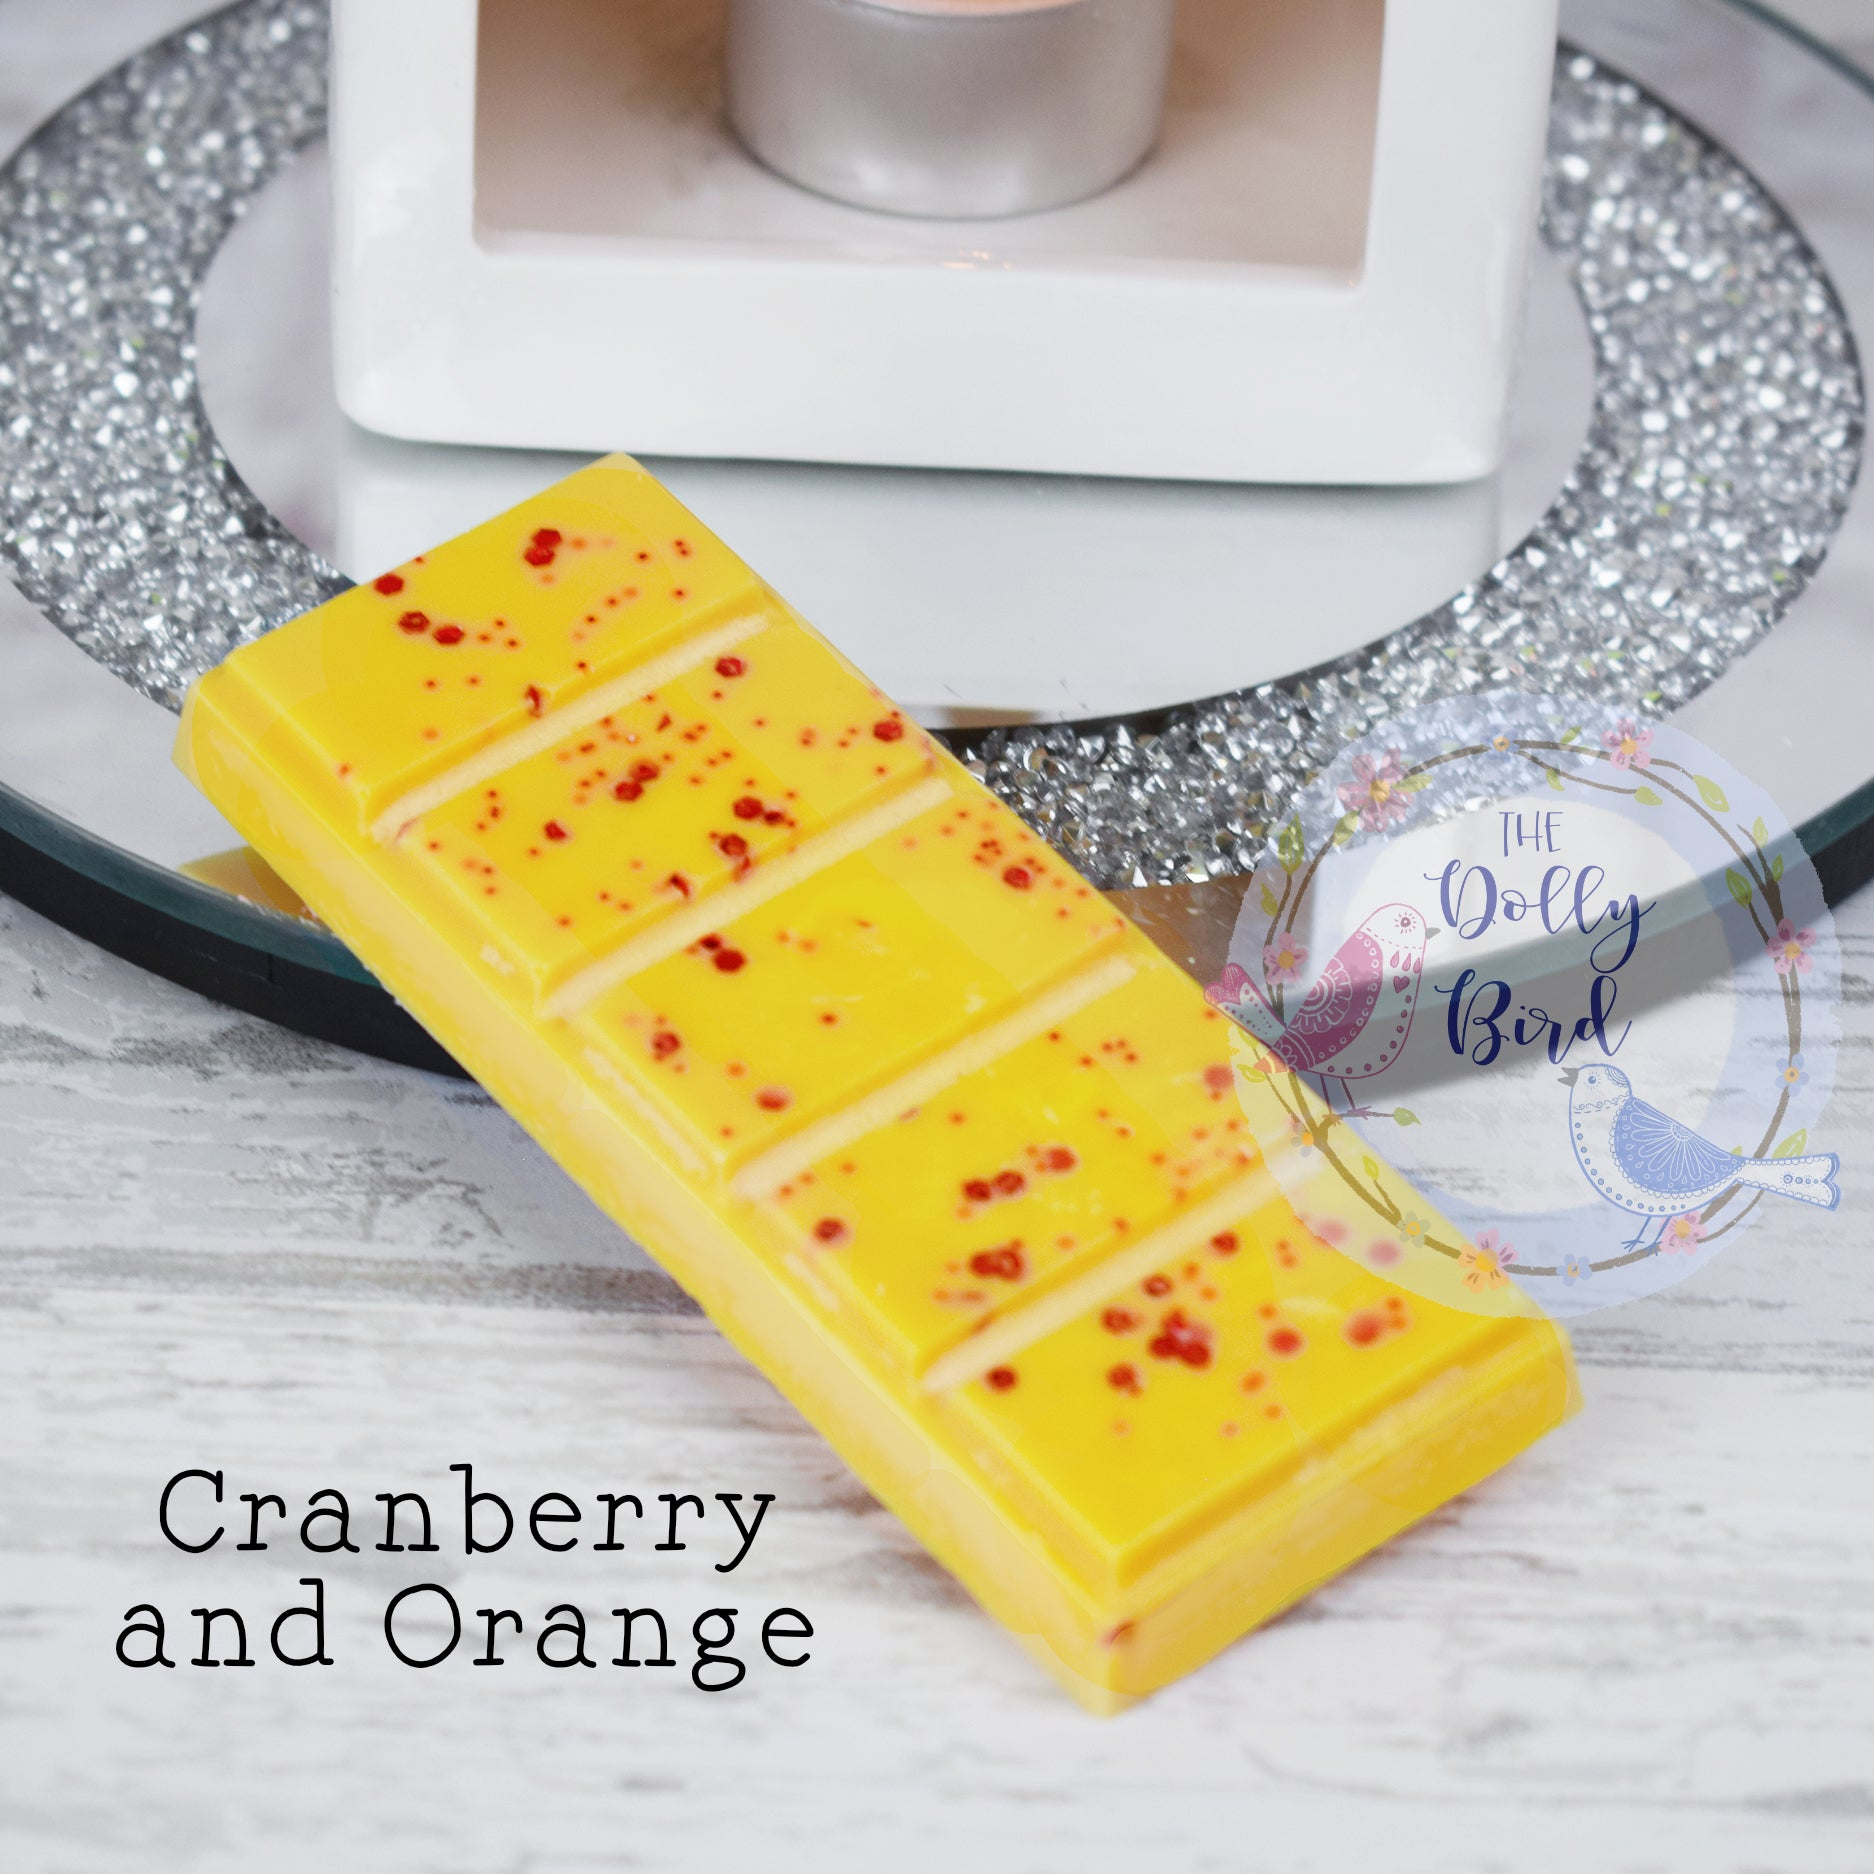 Cranberry And Orange Wax Melts, Zoflora Christmas Cleaning Scented Wax Melt Snap Bar, Christmas Wax Melts, Highly Scented Wax Melts, Fruit Wax Melts